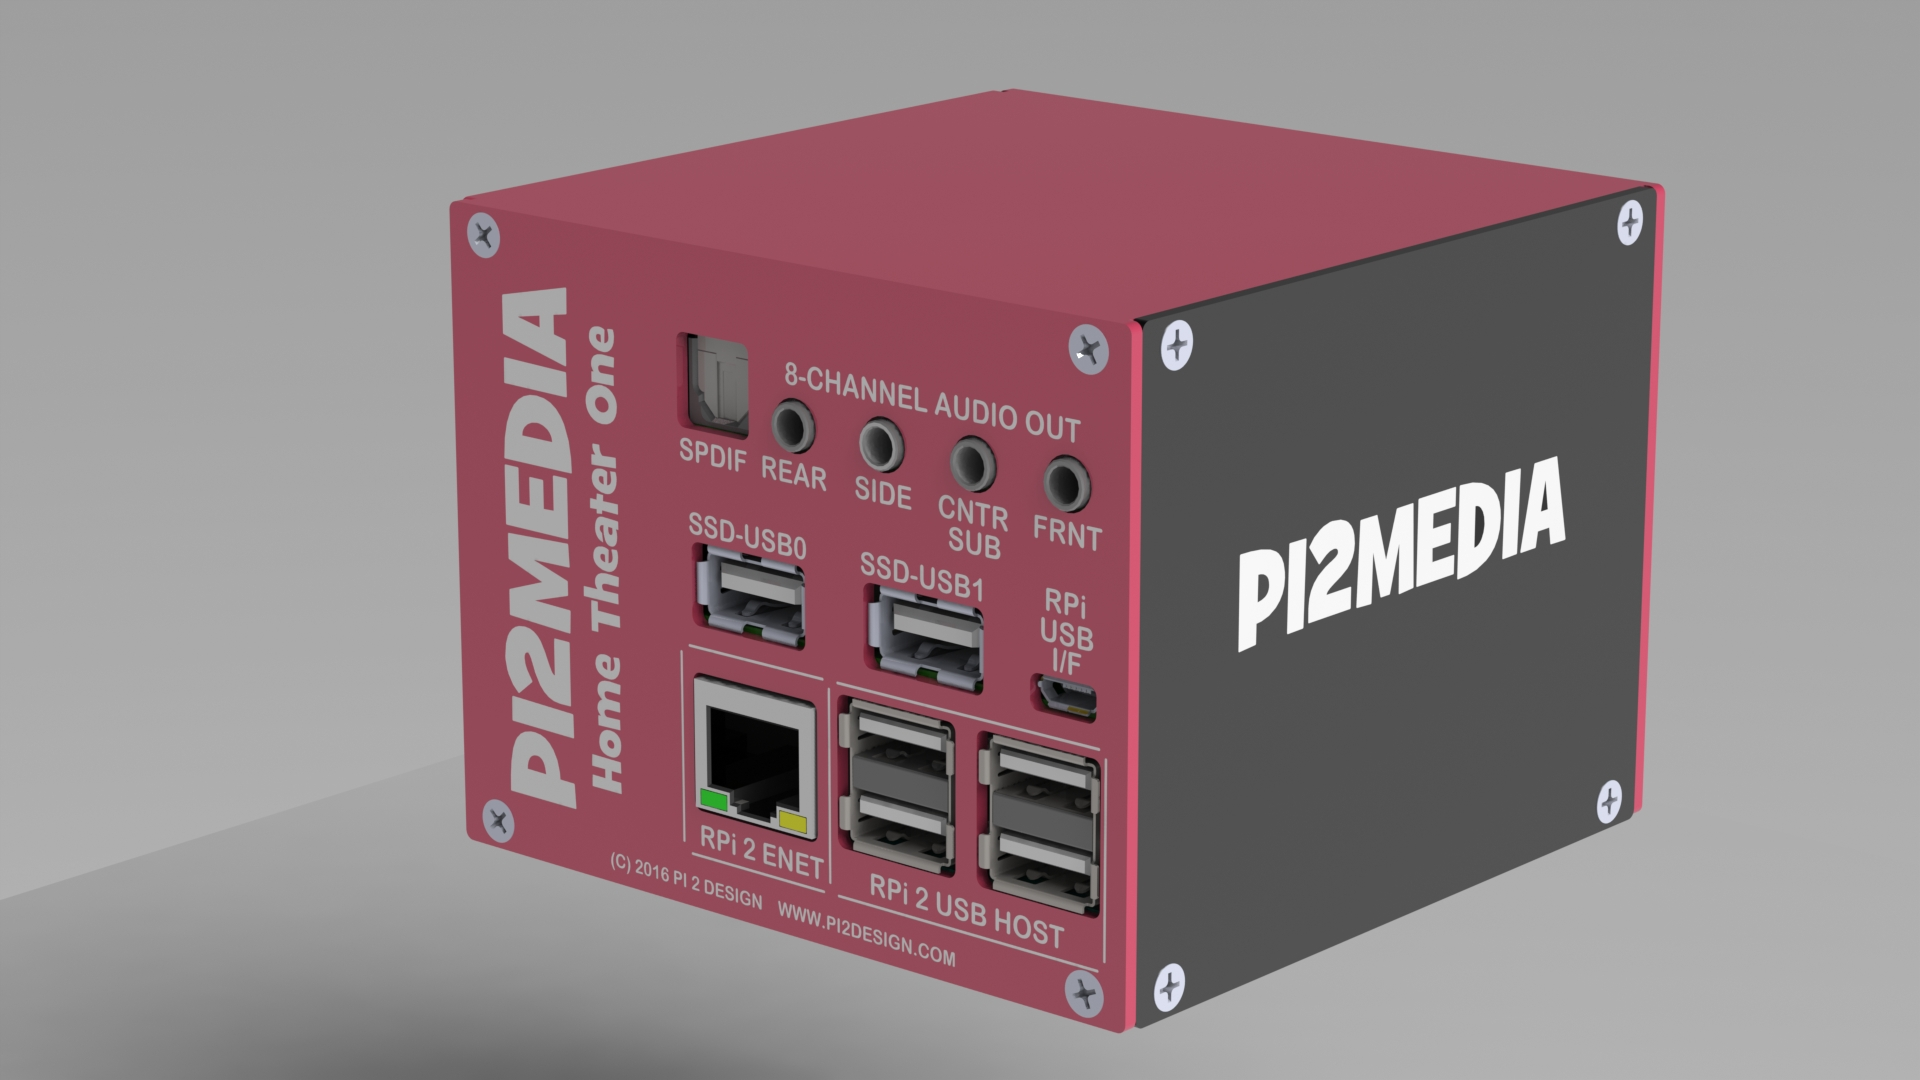 Pi2media Ht1 Surround Sound Home Theater Pc Launches On The Crowdfunding Site Indiegogo Newswire